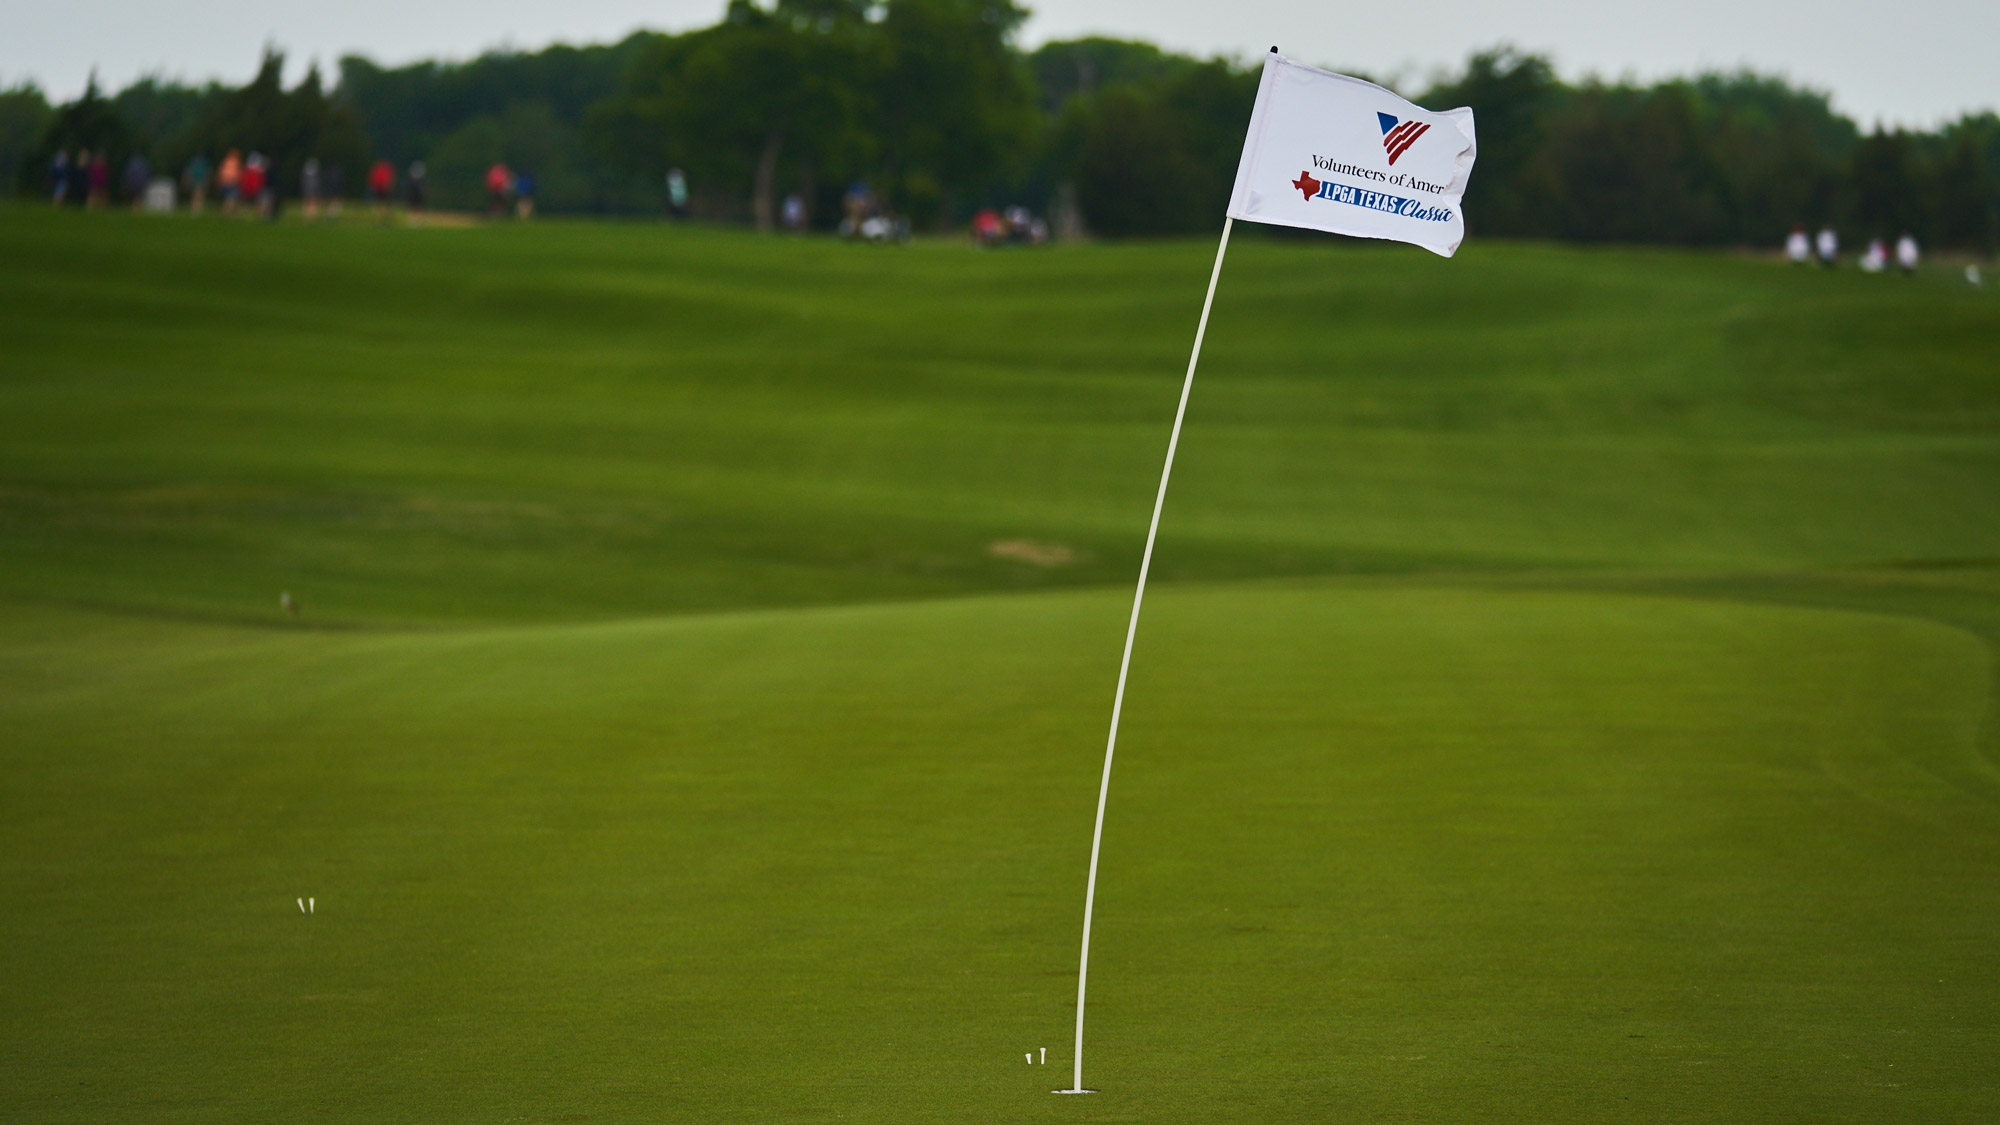 Wind Wrecked Havoc on Thursday at the VOA LPGA Texas Classic